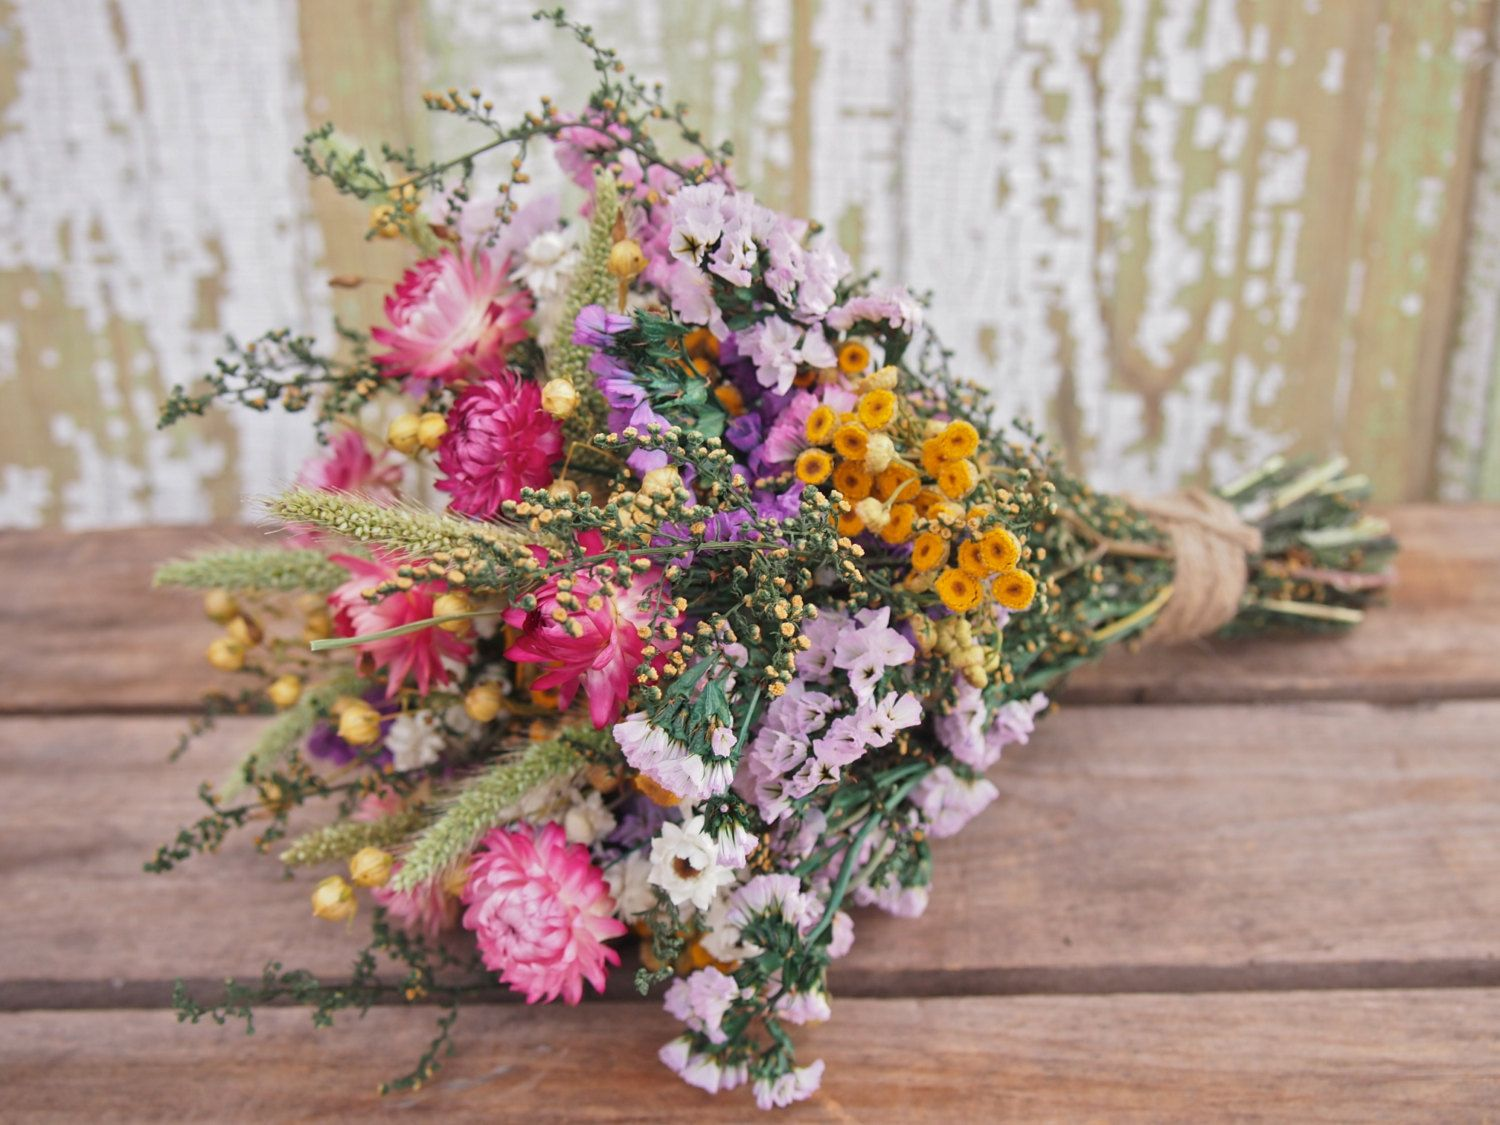 Our Field Flower Bridesmaid Dried Flower Bouquet For A Rustic